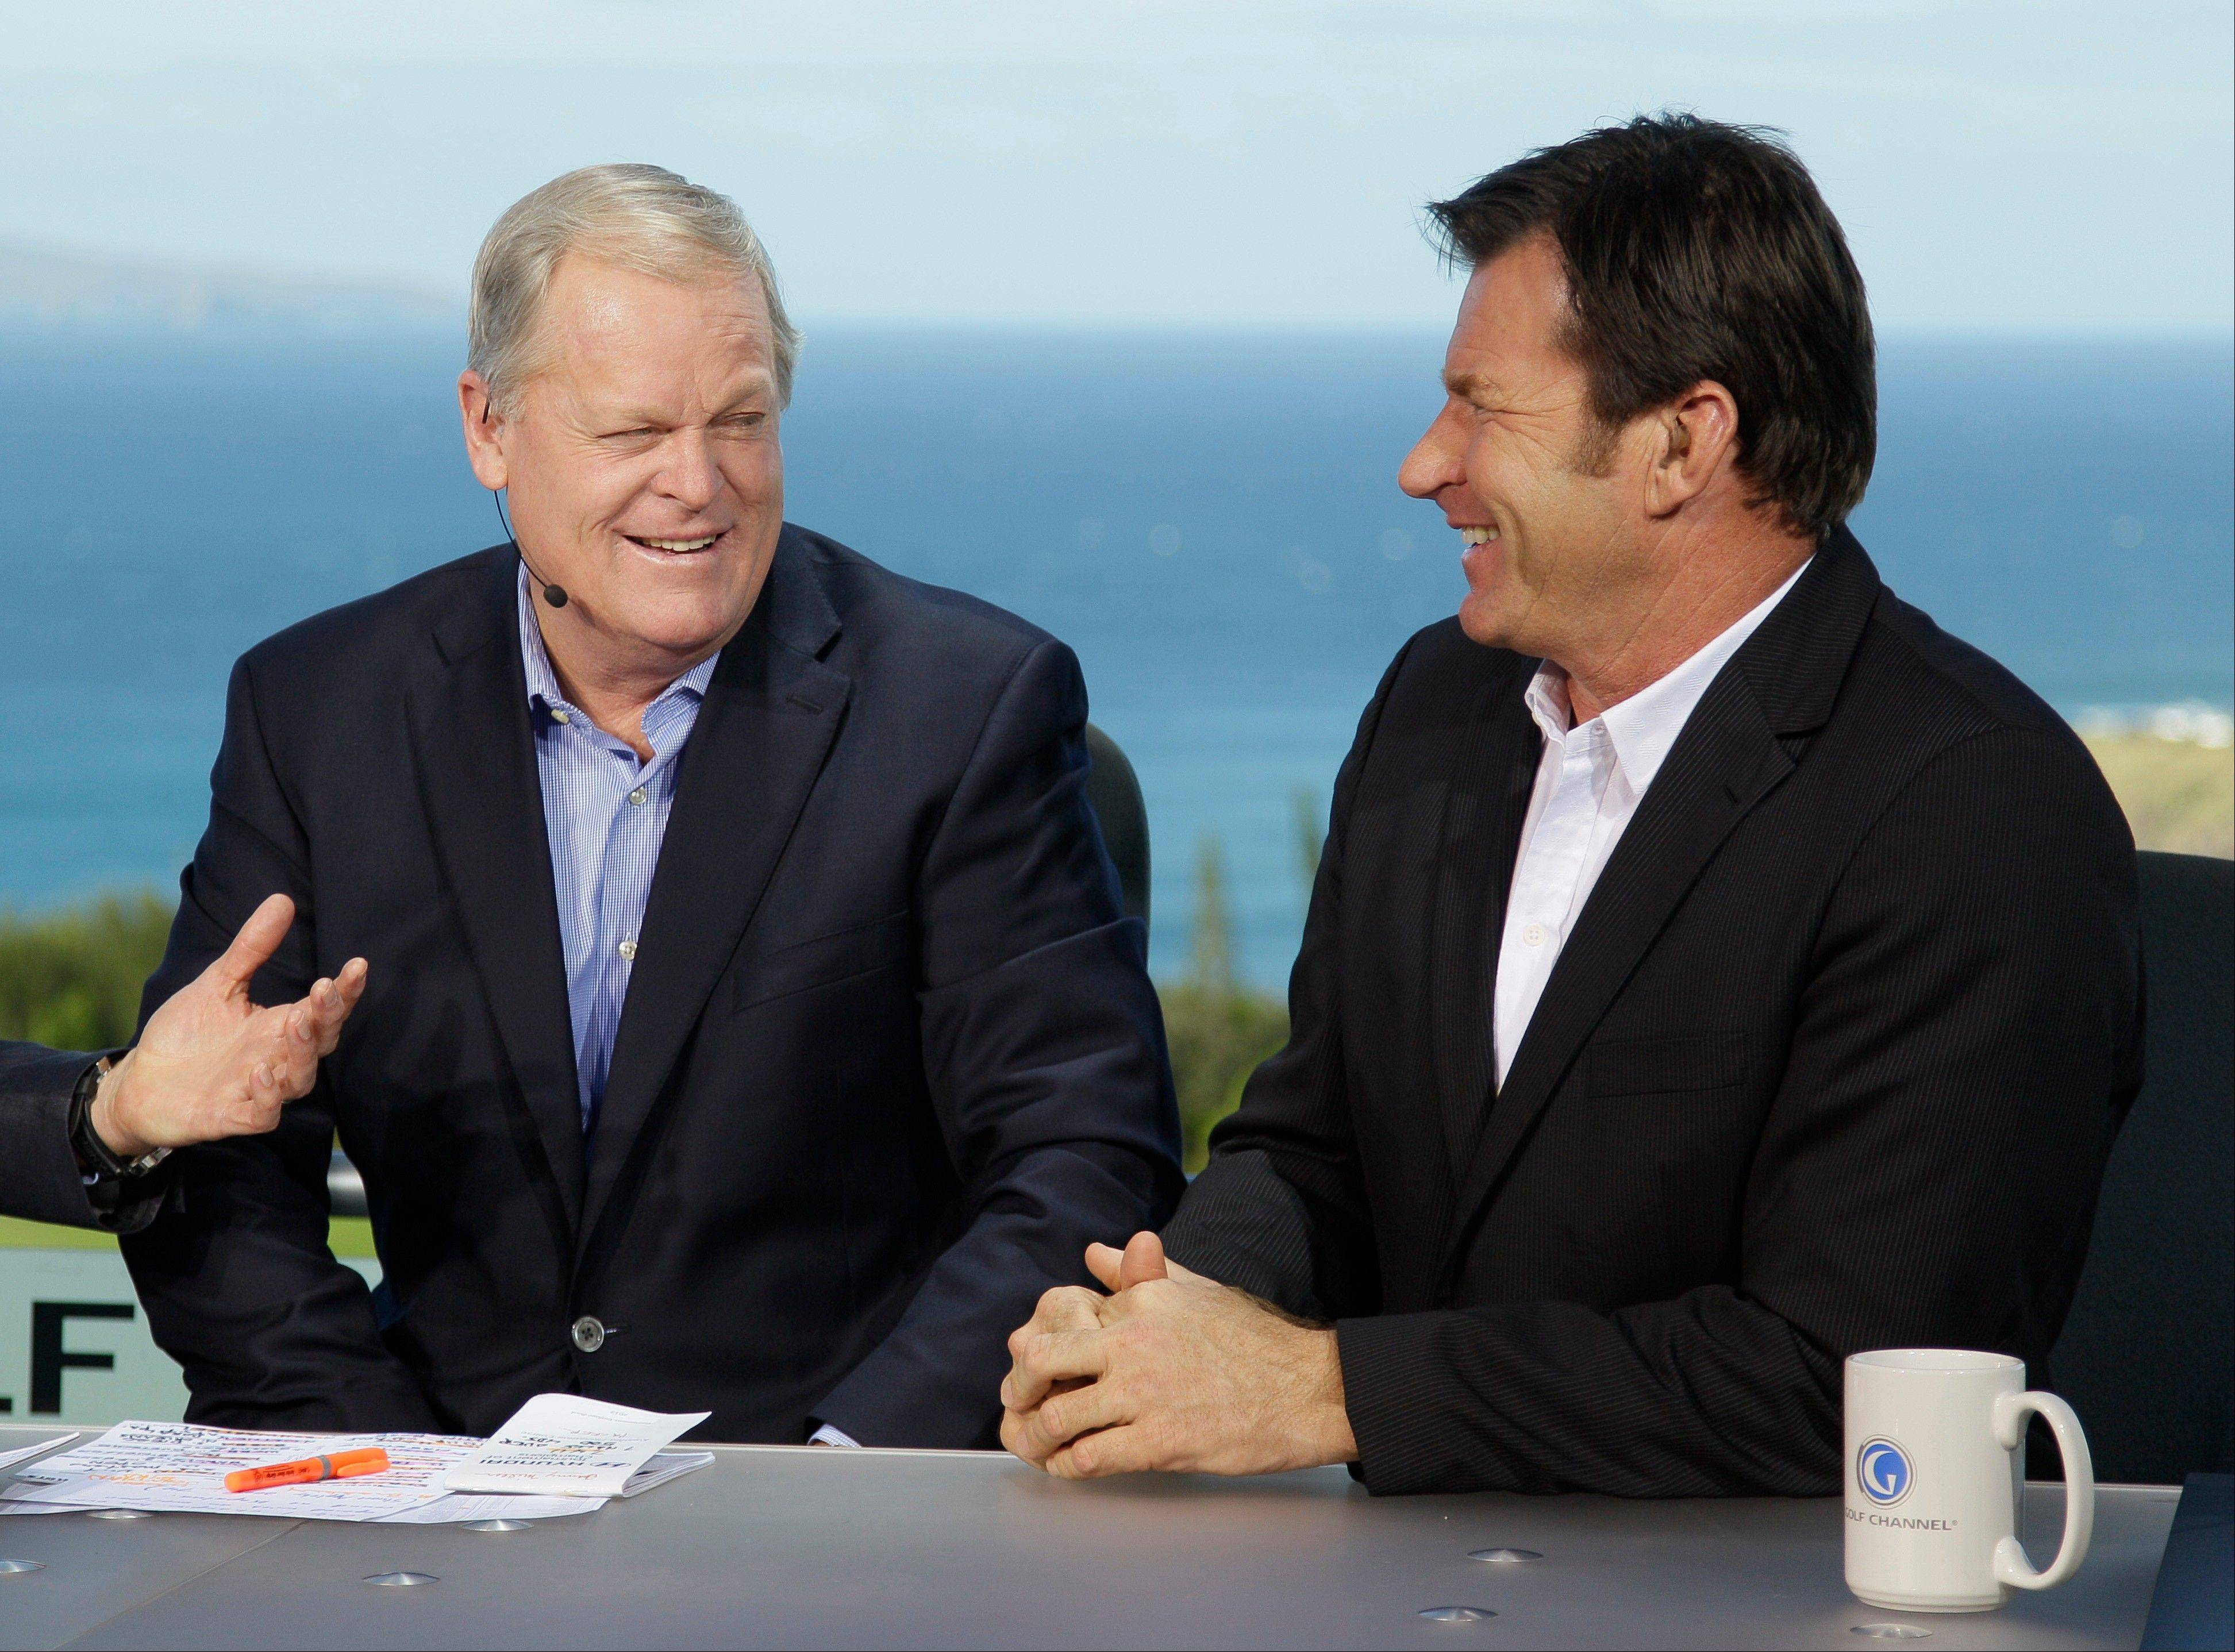 Johnny Miller, left, and Nick Faldo, right, laugh while being introduced at the beginning of a Golf Channel broadcast during the first round of the Hyundai Tournament of Champions PGA Tour golf tournament. Fox Sports is in as the broadcast partner for the U.S. Open starting in 2015. Miller appears to be out.